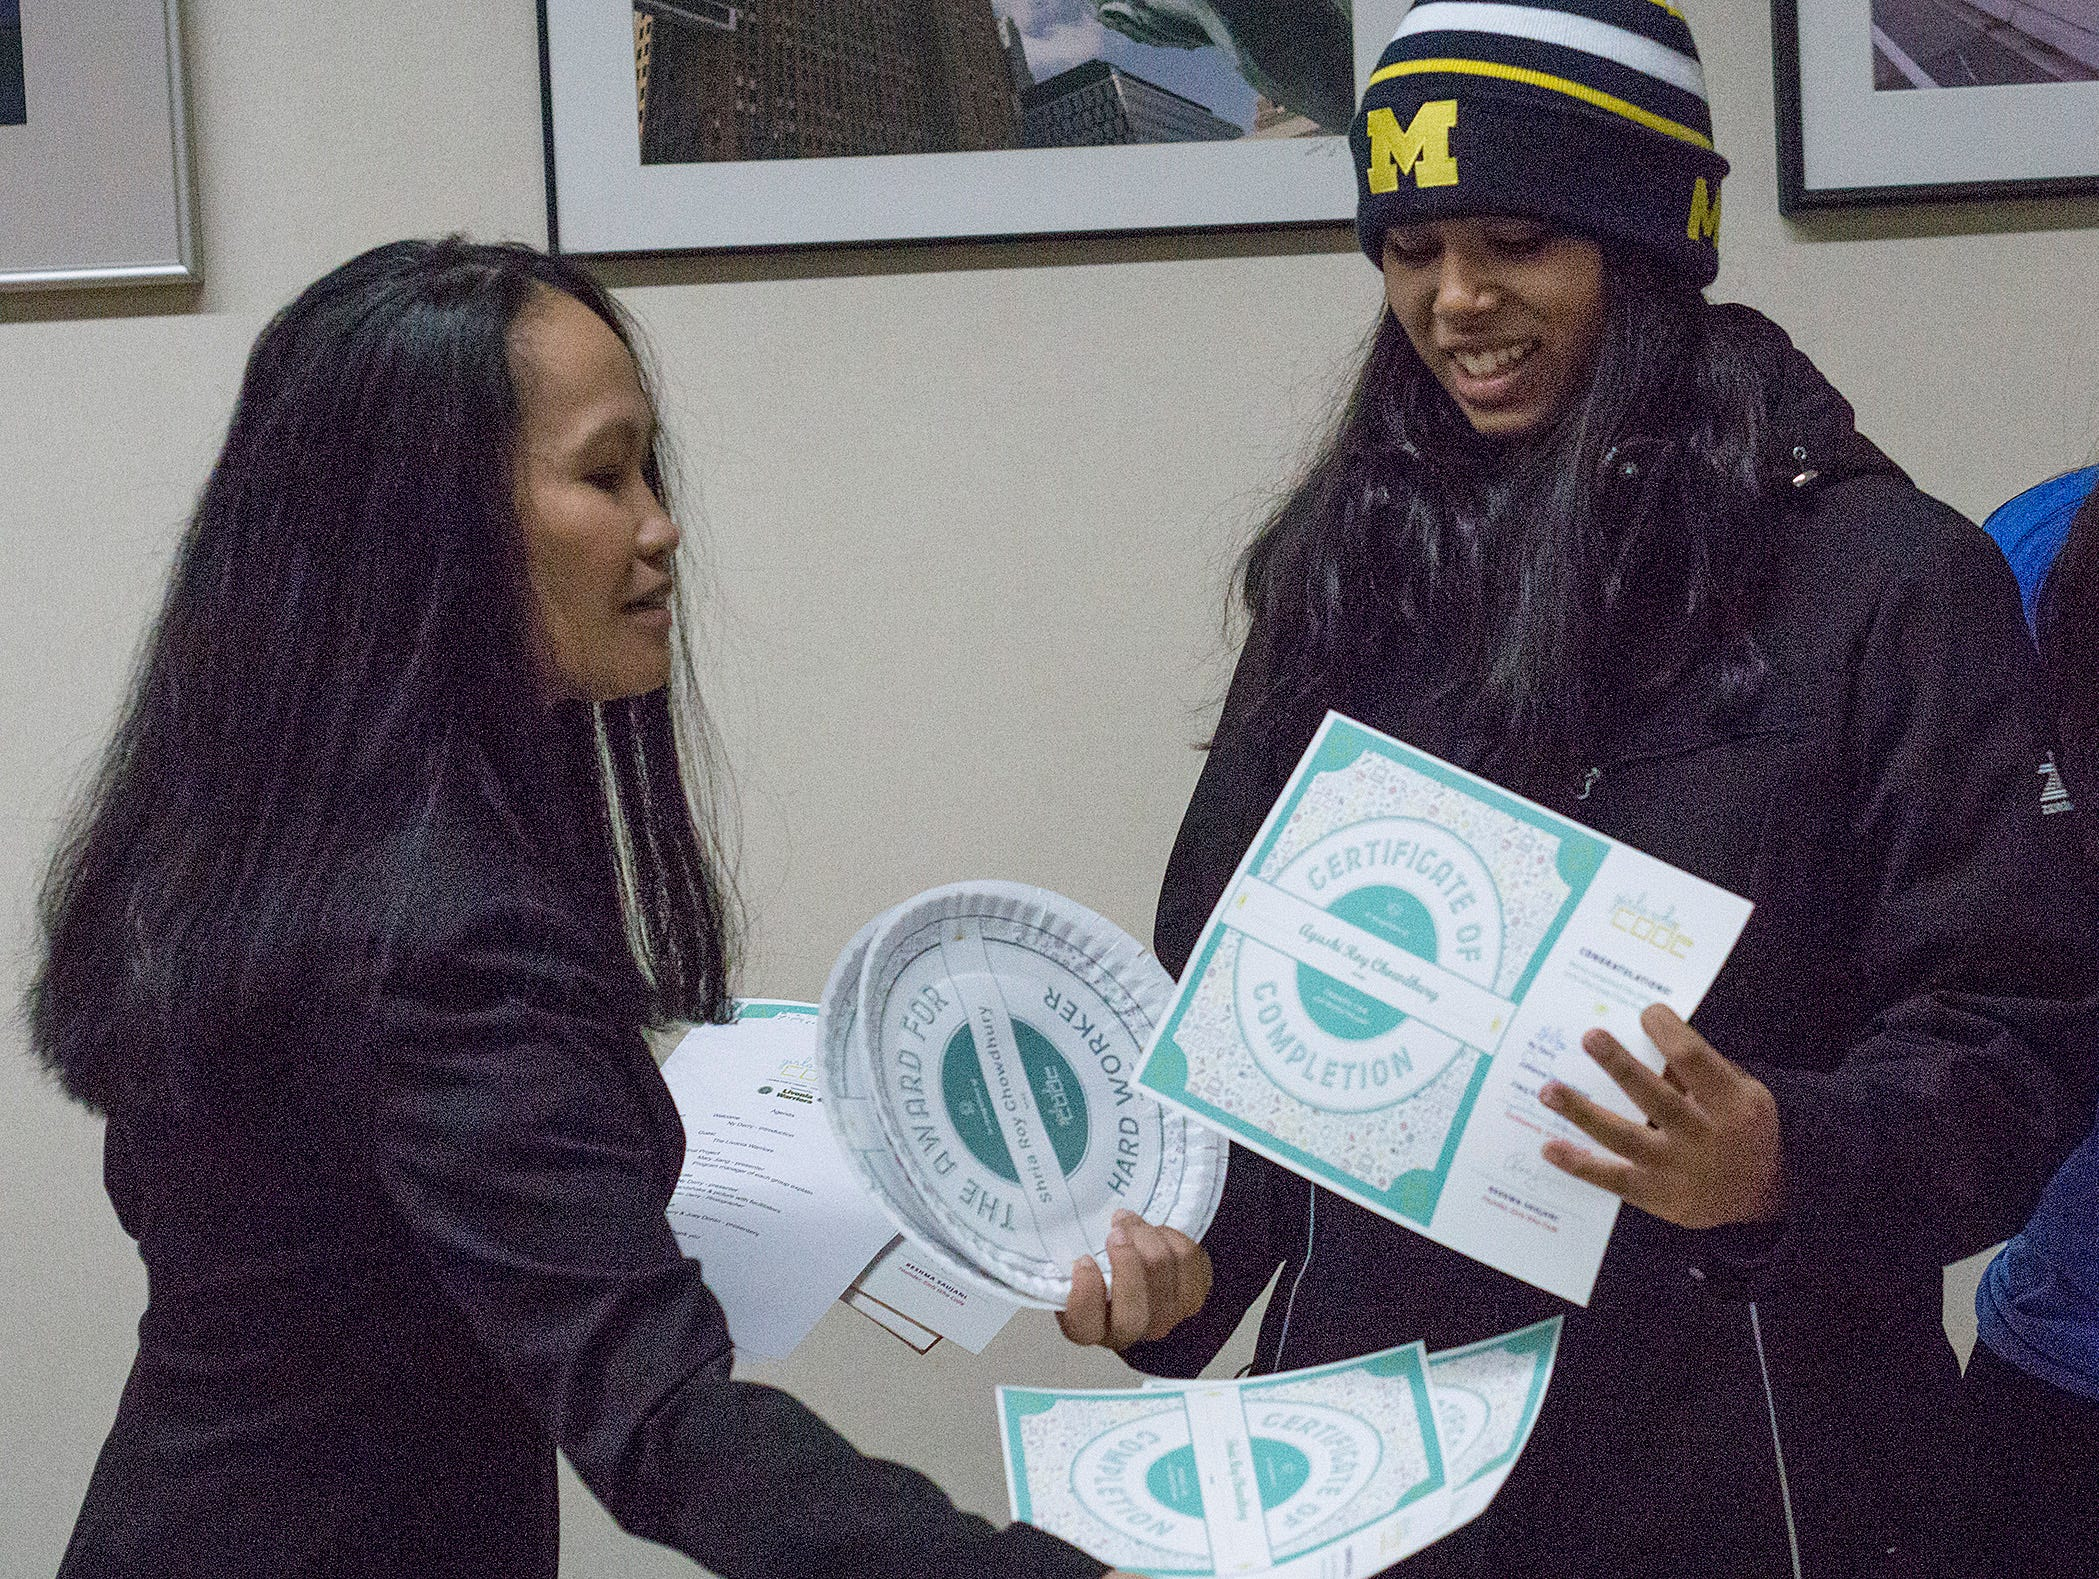 NY Derry presents awards to Ayushi Chowdhurry, a student at International Academy in Troy.